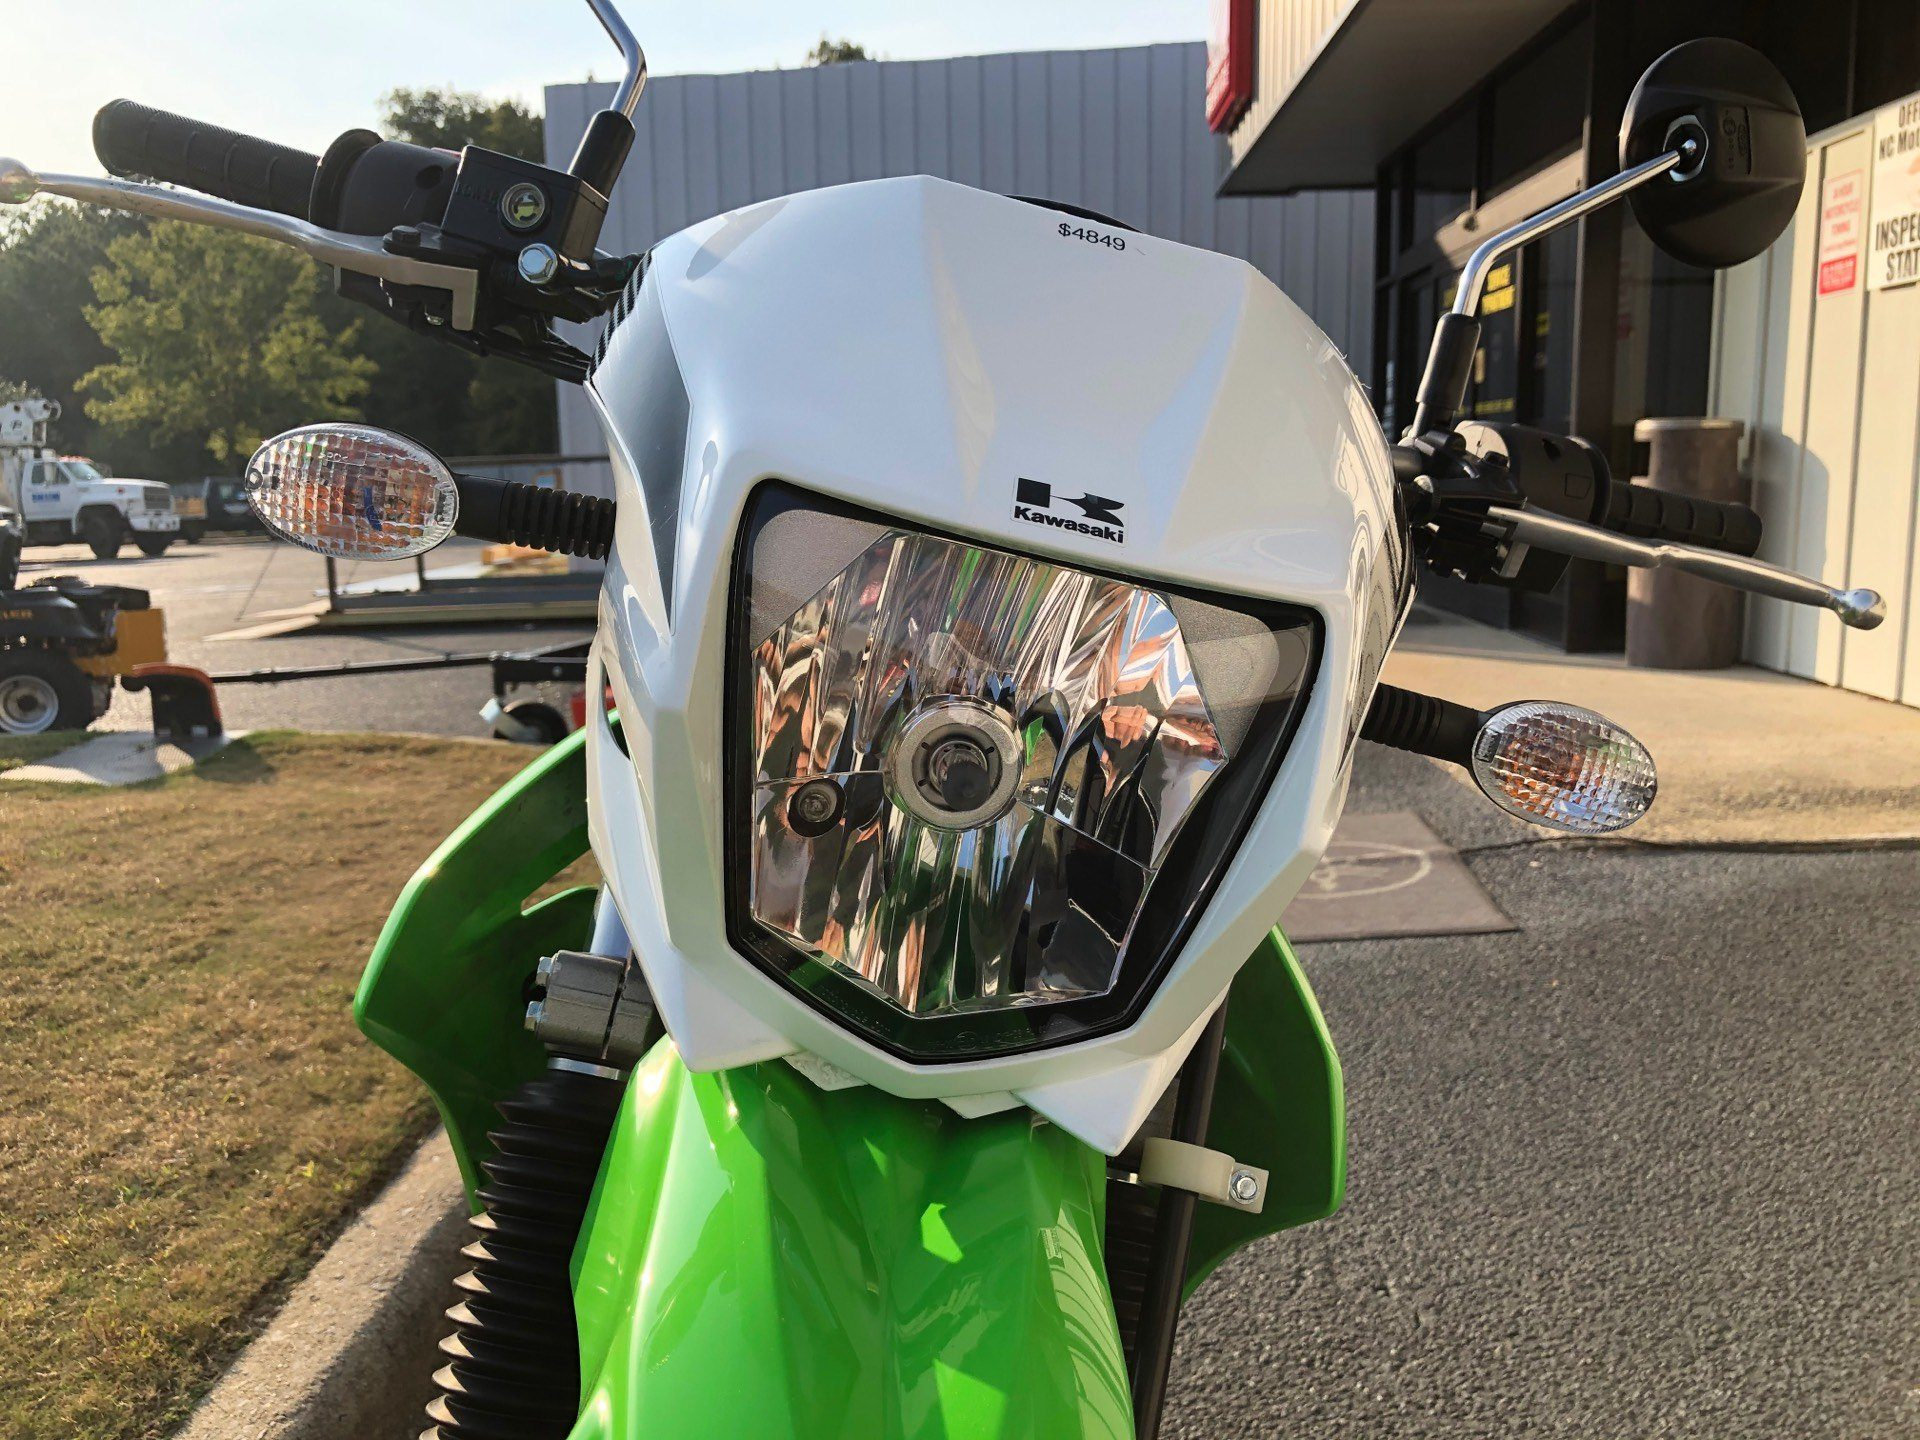 2020 Kawasaki KLX 230 in Greenville, North Carolina - Photo 13